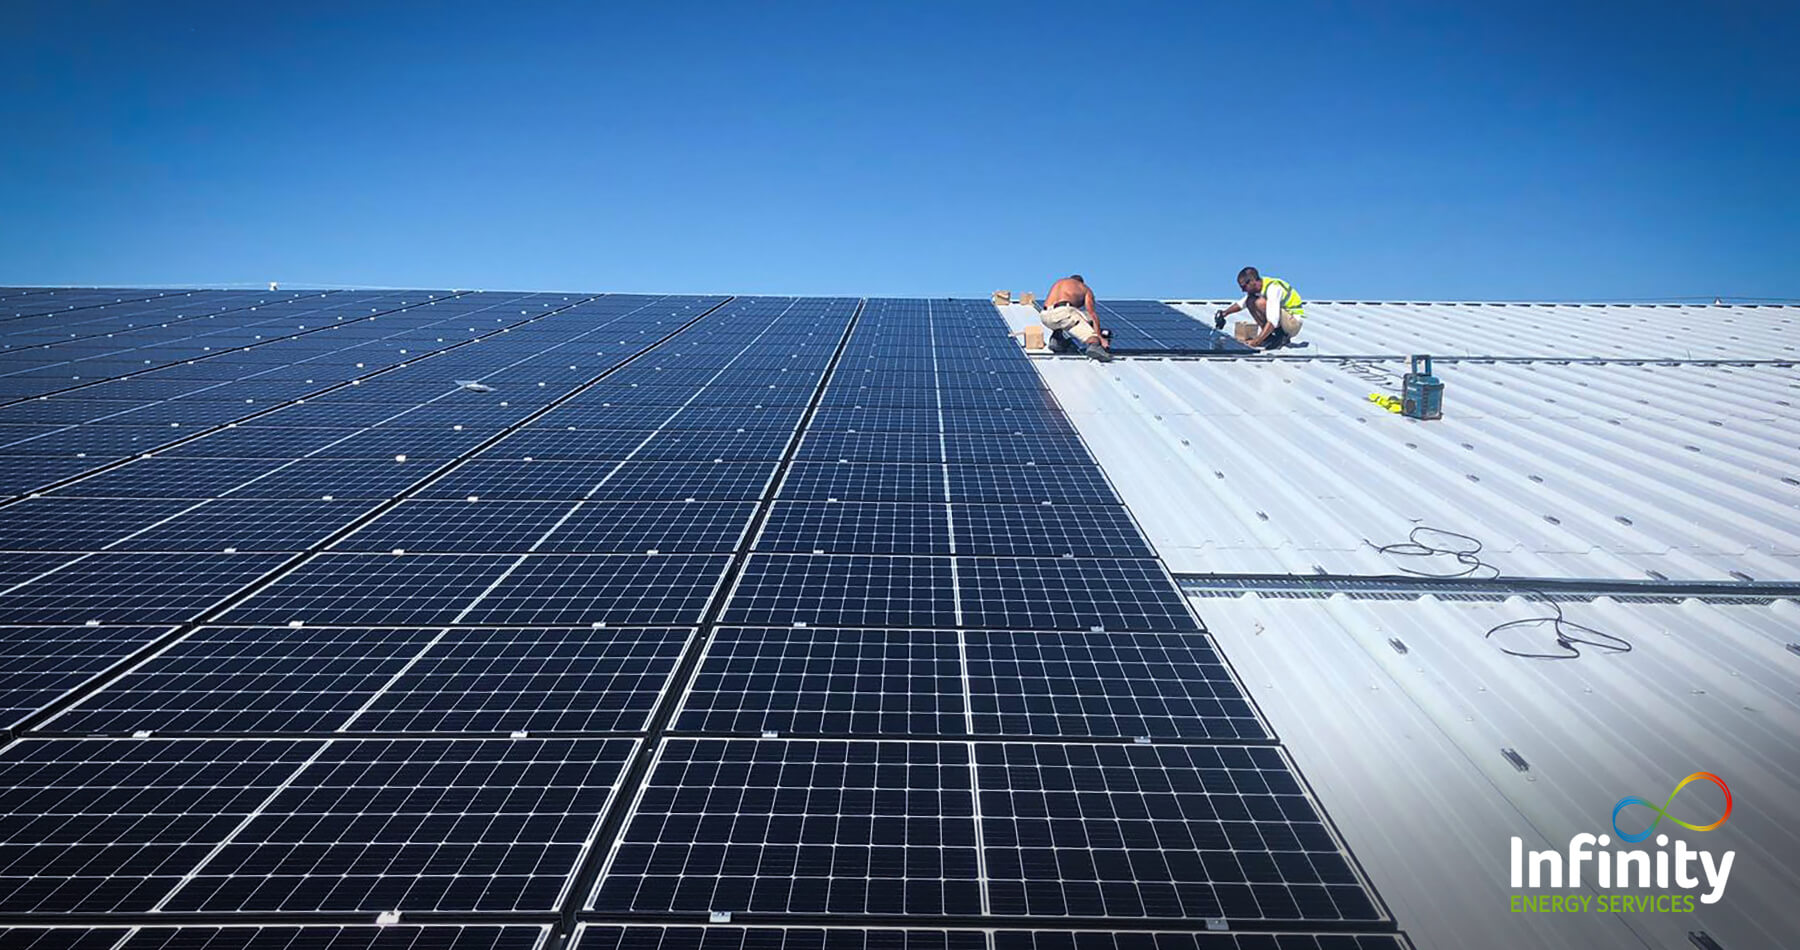 gallery solar business 7 - Solar Panels for Business